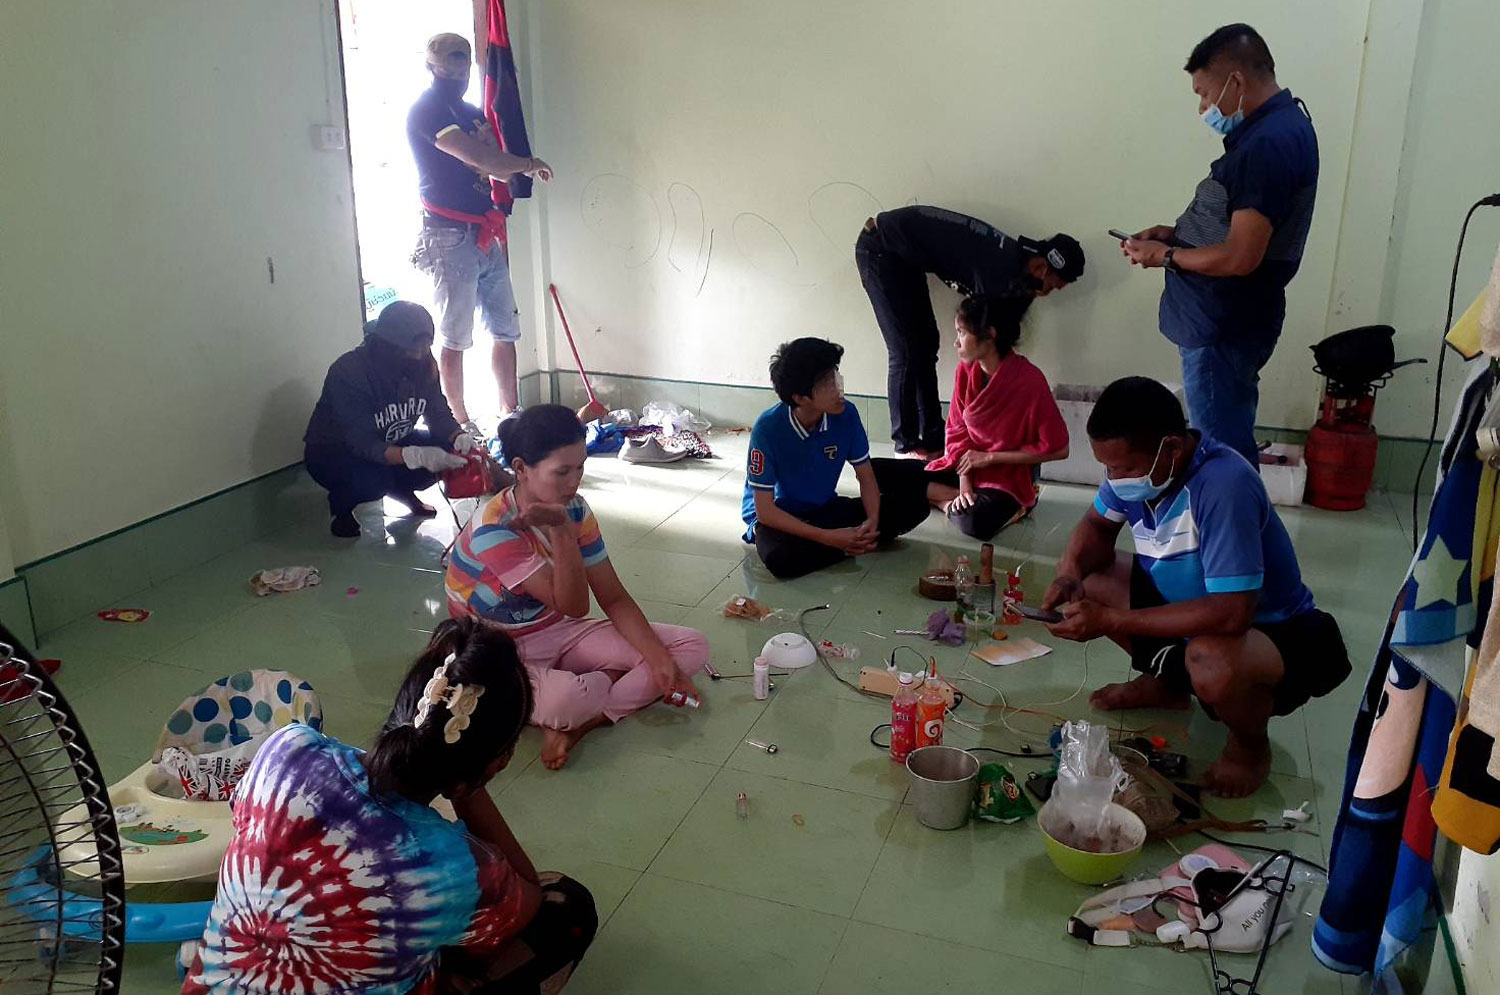 Officials question four young women and a male teenager found taking methamphetamine inside a rented house in Thepha district of Songkhla on Saturday. (Photo: Assawin Pakkawan)